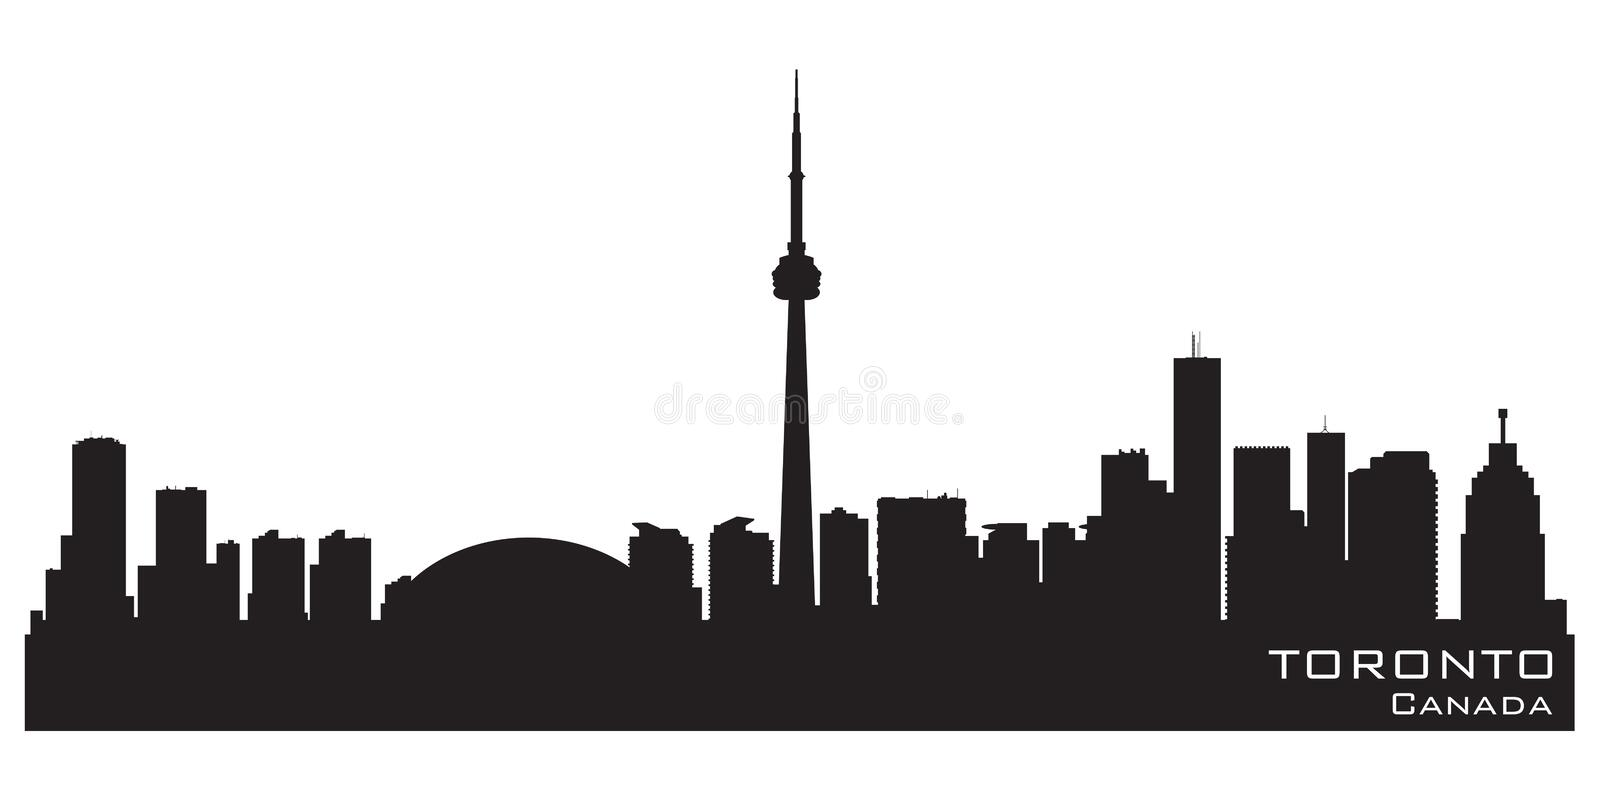 Toronto Canada skyline. Detailed vector silhouette. Toronto Canada skyline background vector illustration royalty free illustration